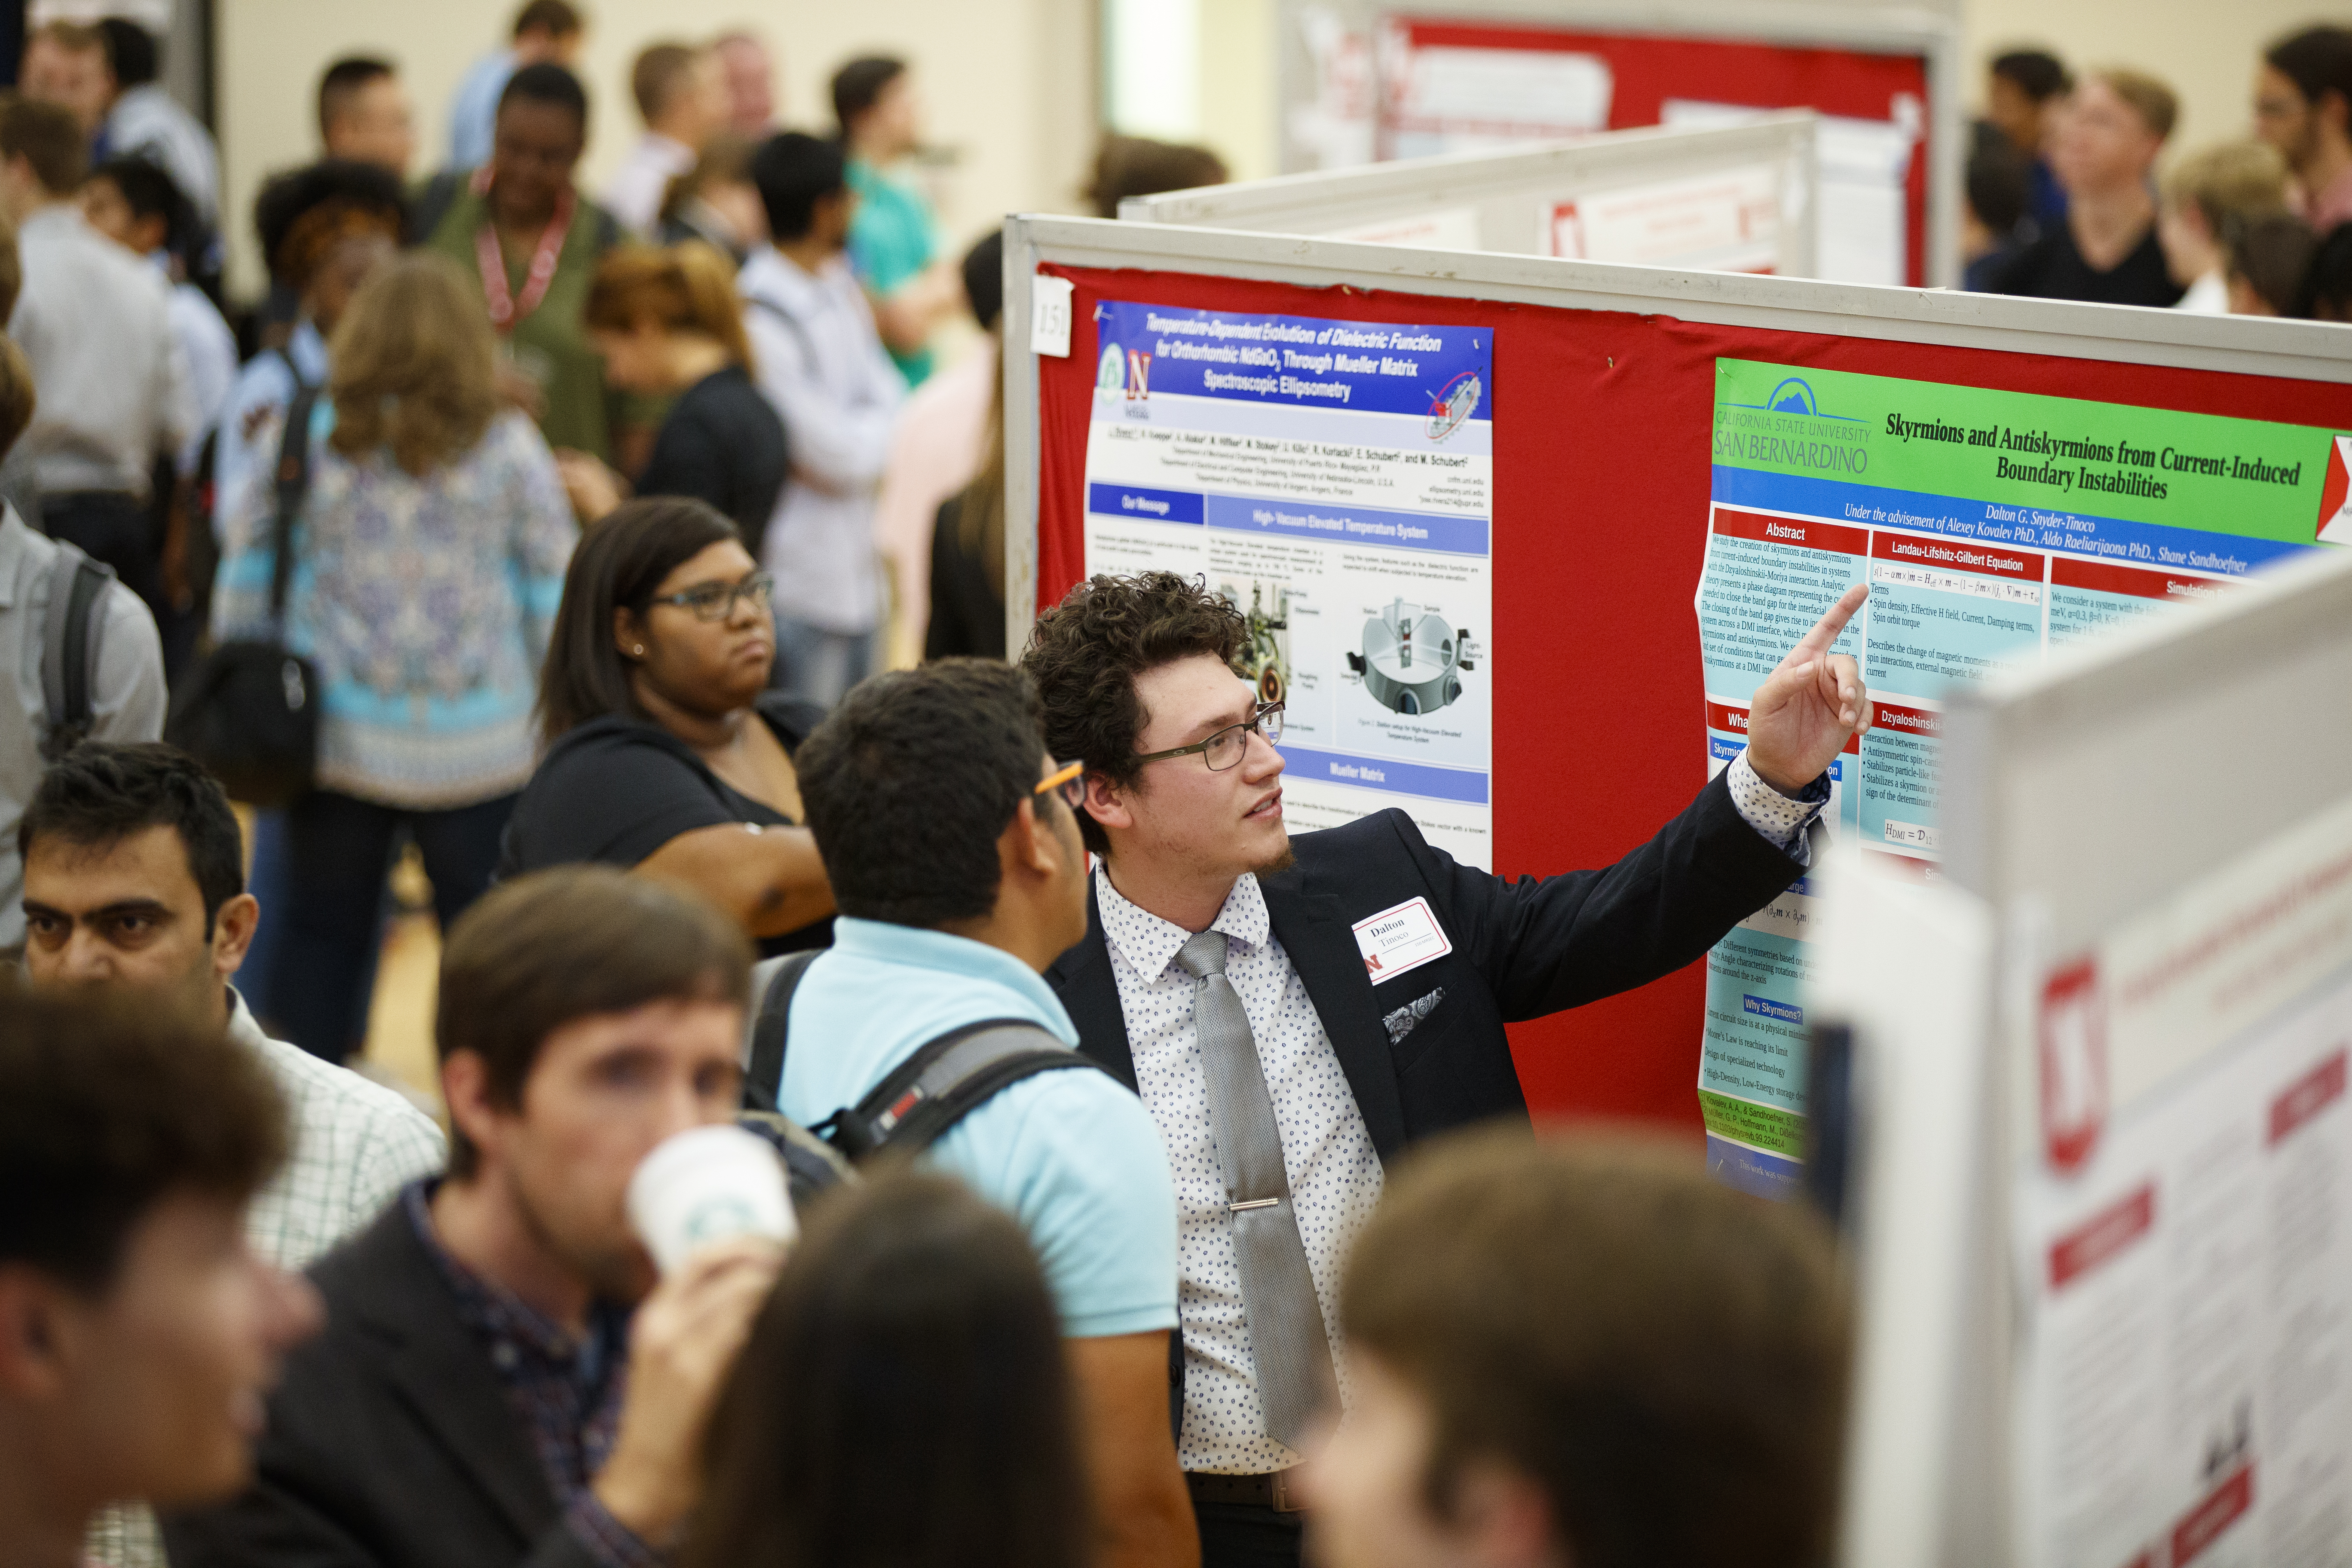 Students presenting at a research poster session.